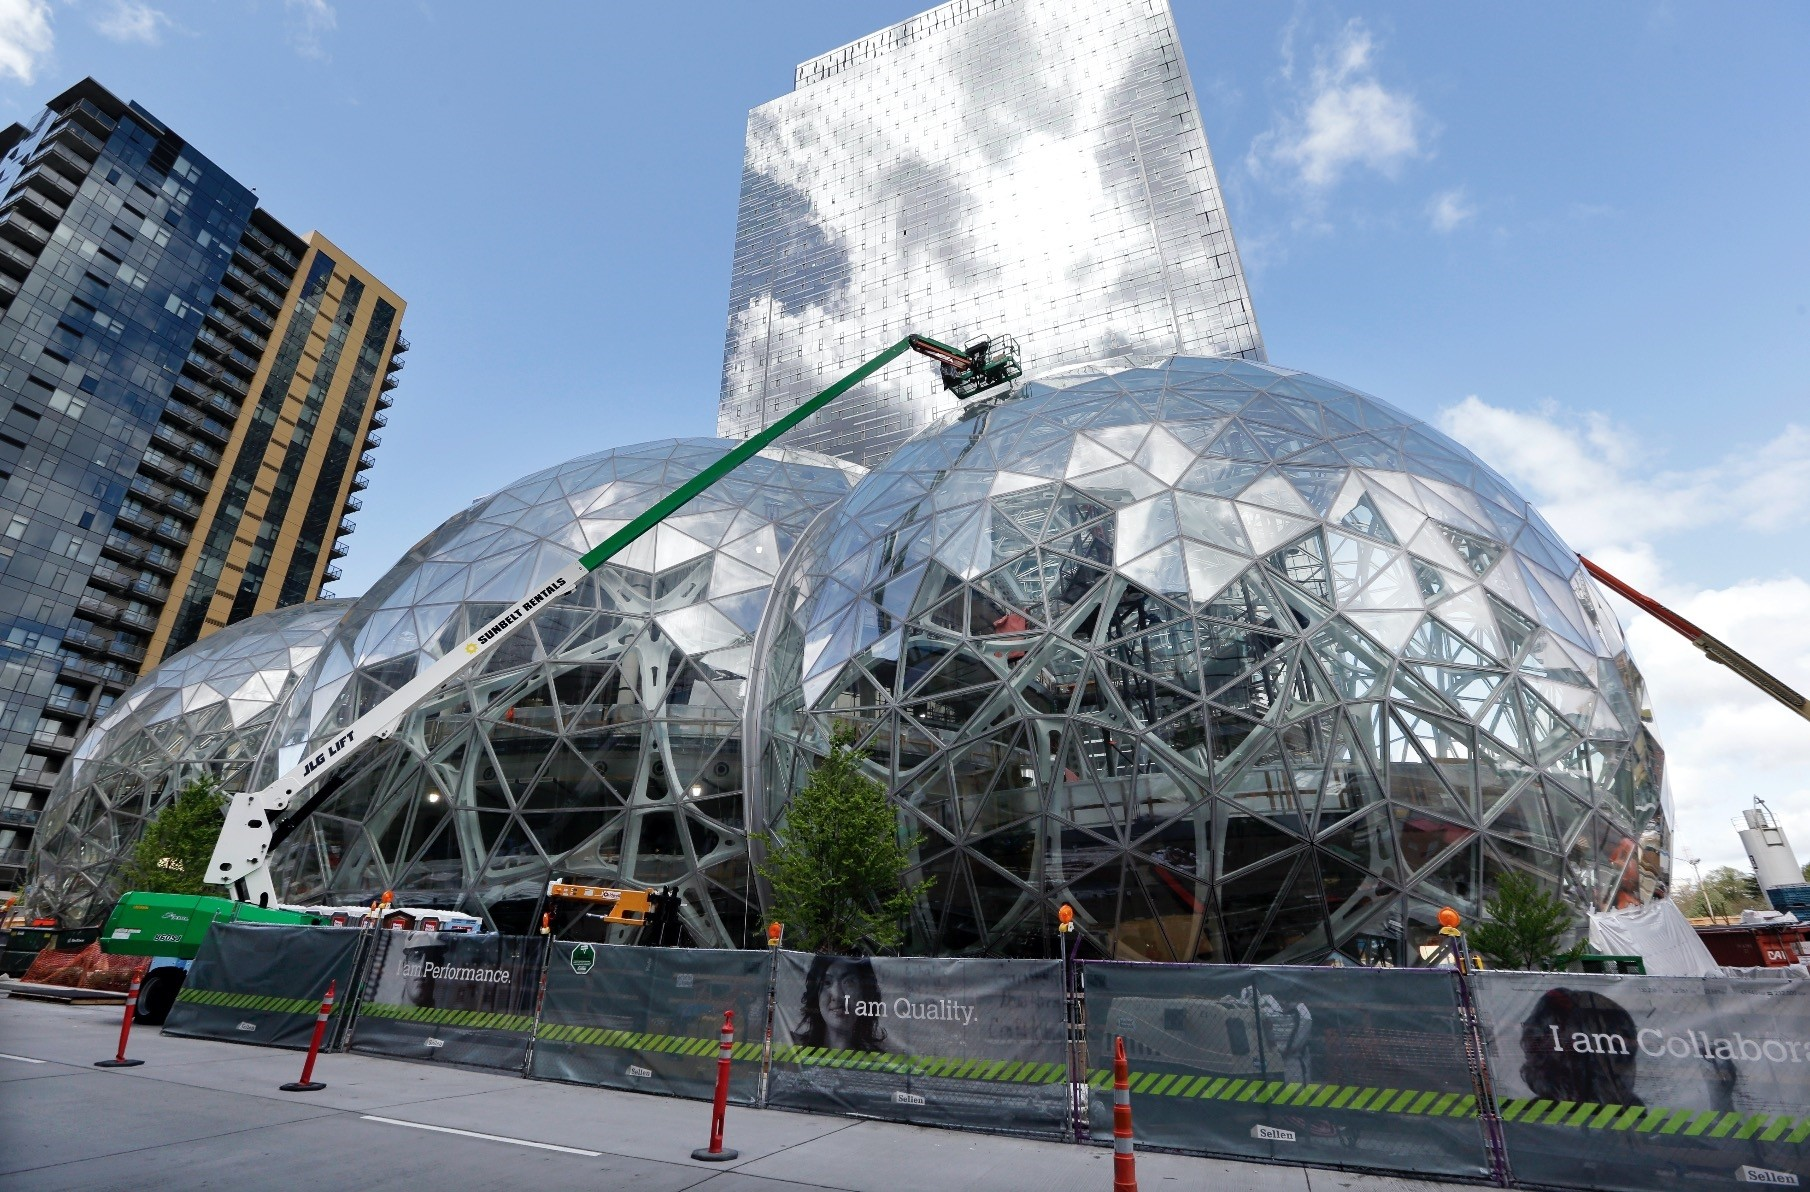 Construction continues on three large, glass-covered domes as part of an expansion of the Amazon.com campus in downtown Seattle. The structures are expected to begin being used by employees in early 2018.